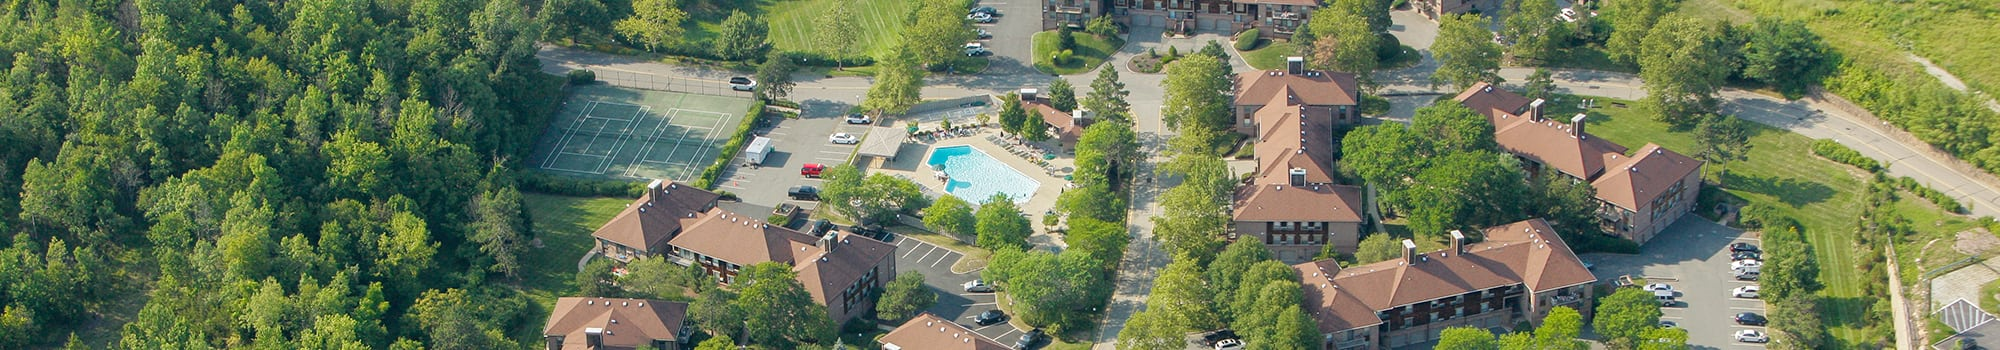 Everly Roseland is located in a nice neighborhood in Roseland, New Jersey